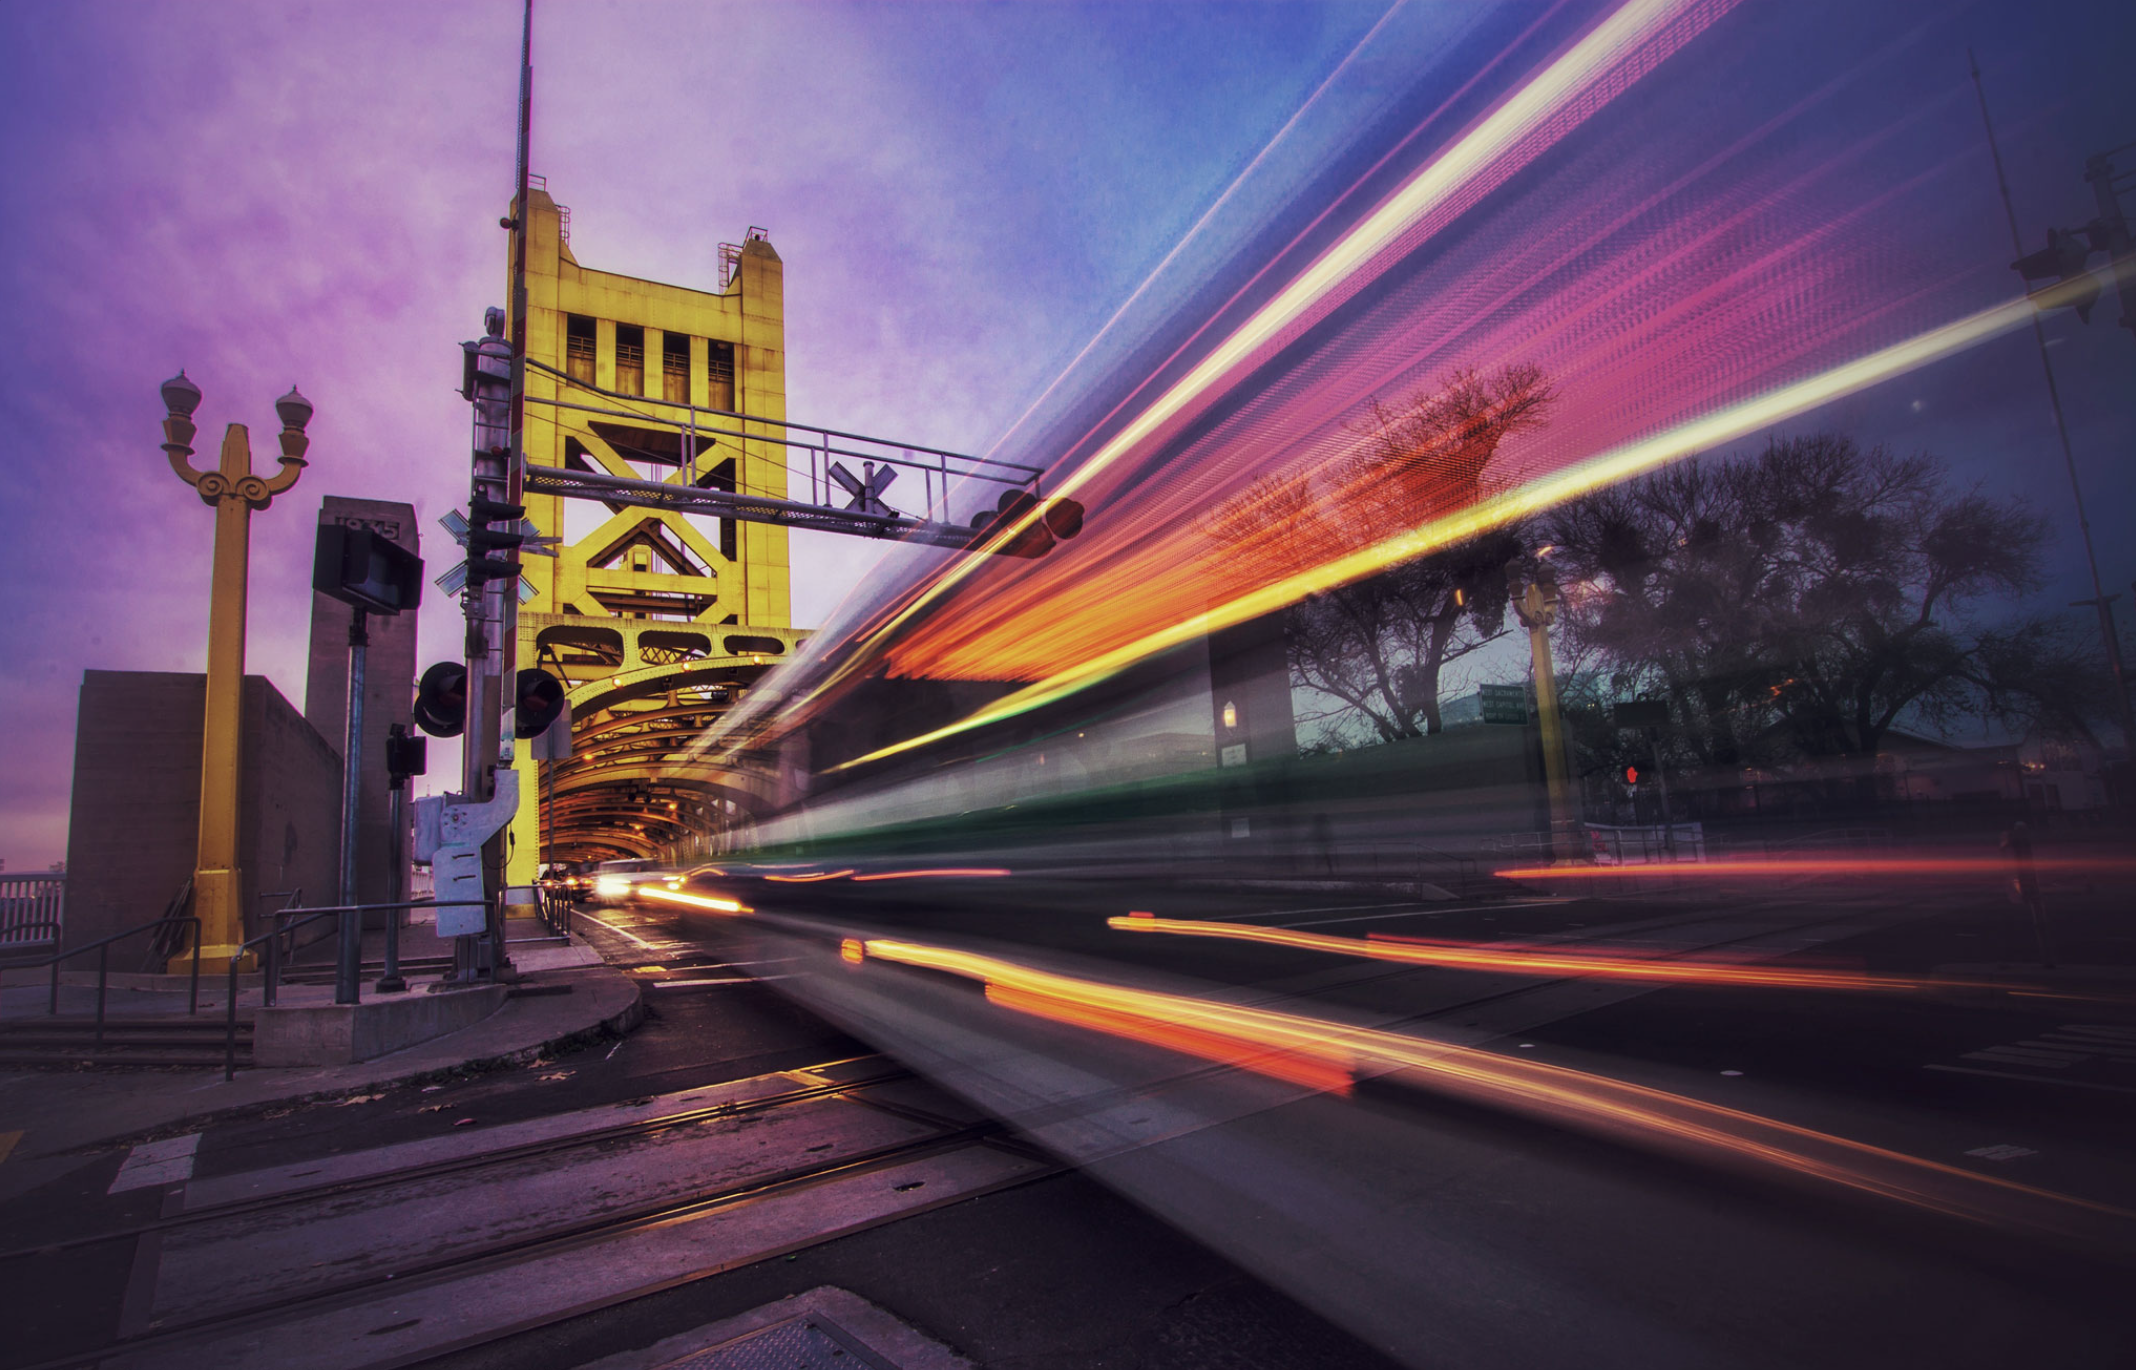 And that's a wrap! I'll leave you with one of my favorite long exposure shot of a bus passing through our lovely tower bridge.  Hope everyone had an awesome weekend and thank you all for following along. Big thanks to  @visitsacramento  for letting me host this weekend!